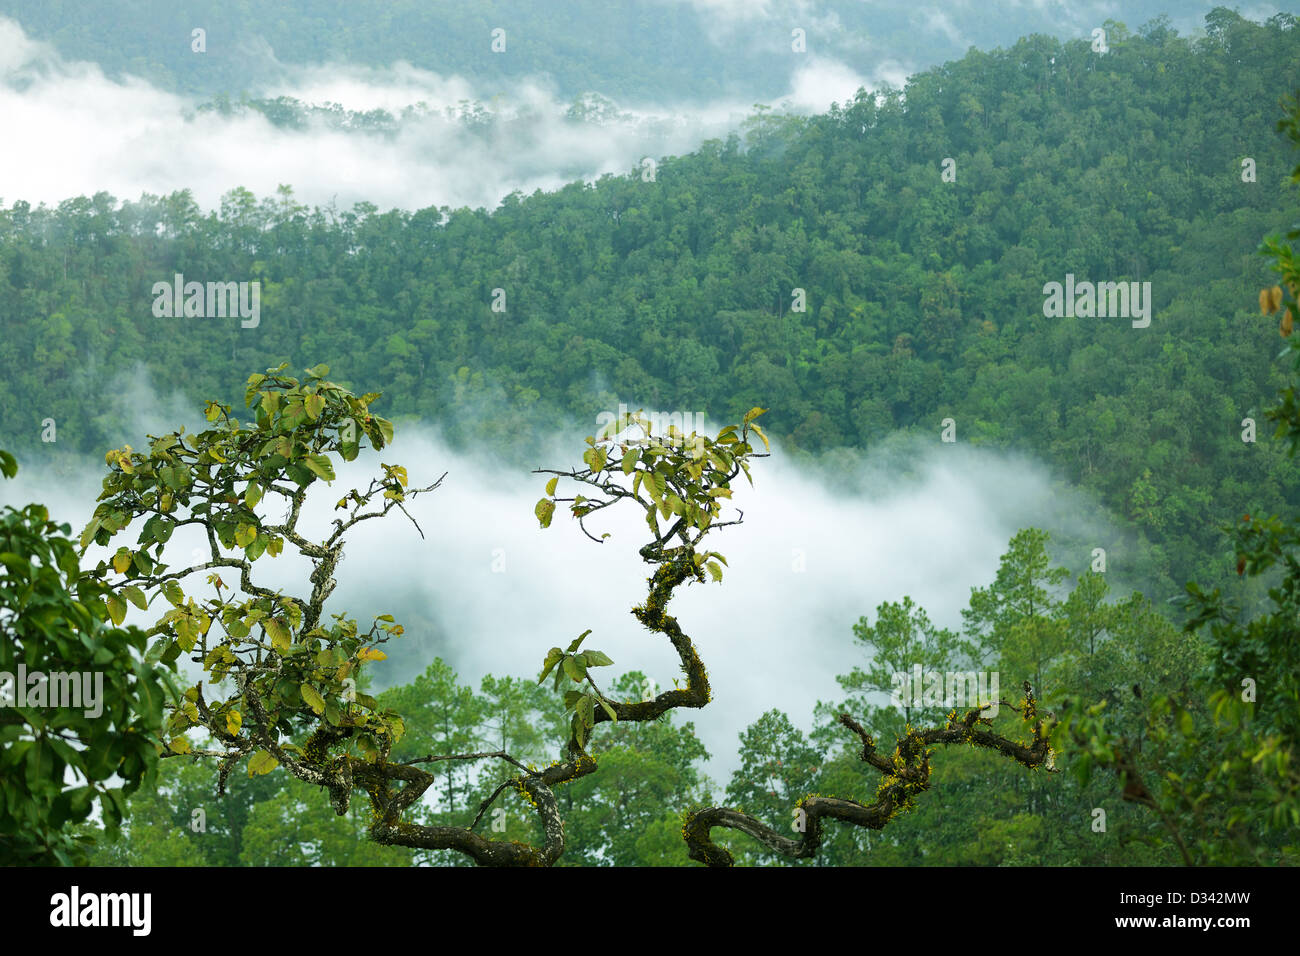 Rainforest landscape in Morning fog, Doi Kiew Lom viempoint, Pangmapha, Thailand - Stock Image